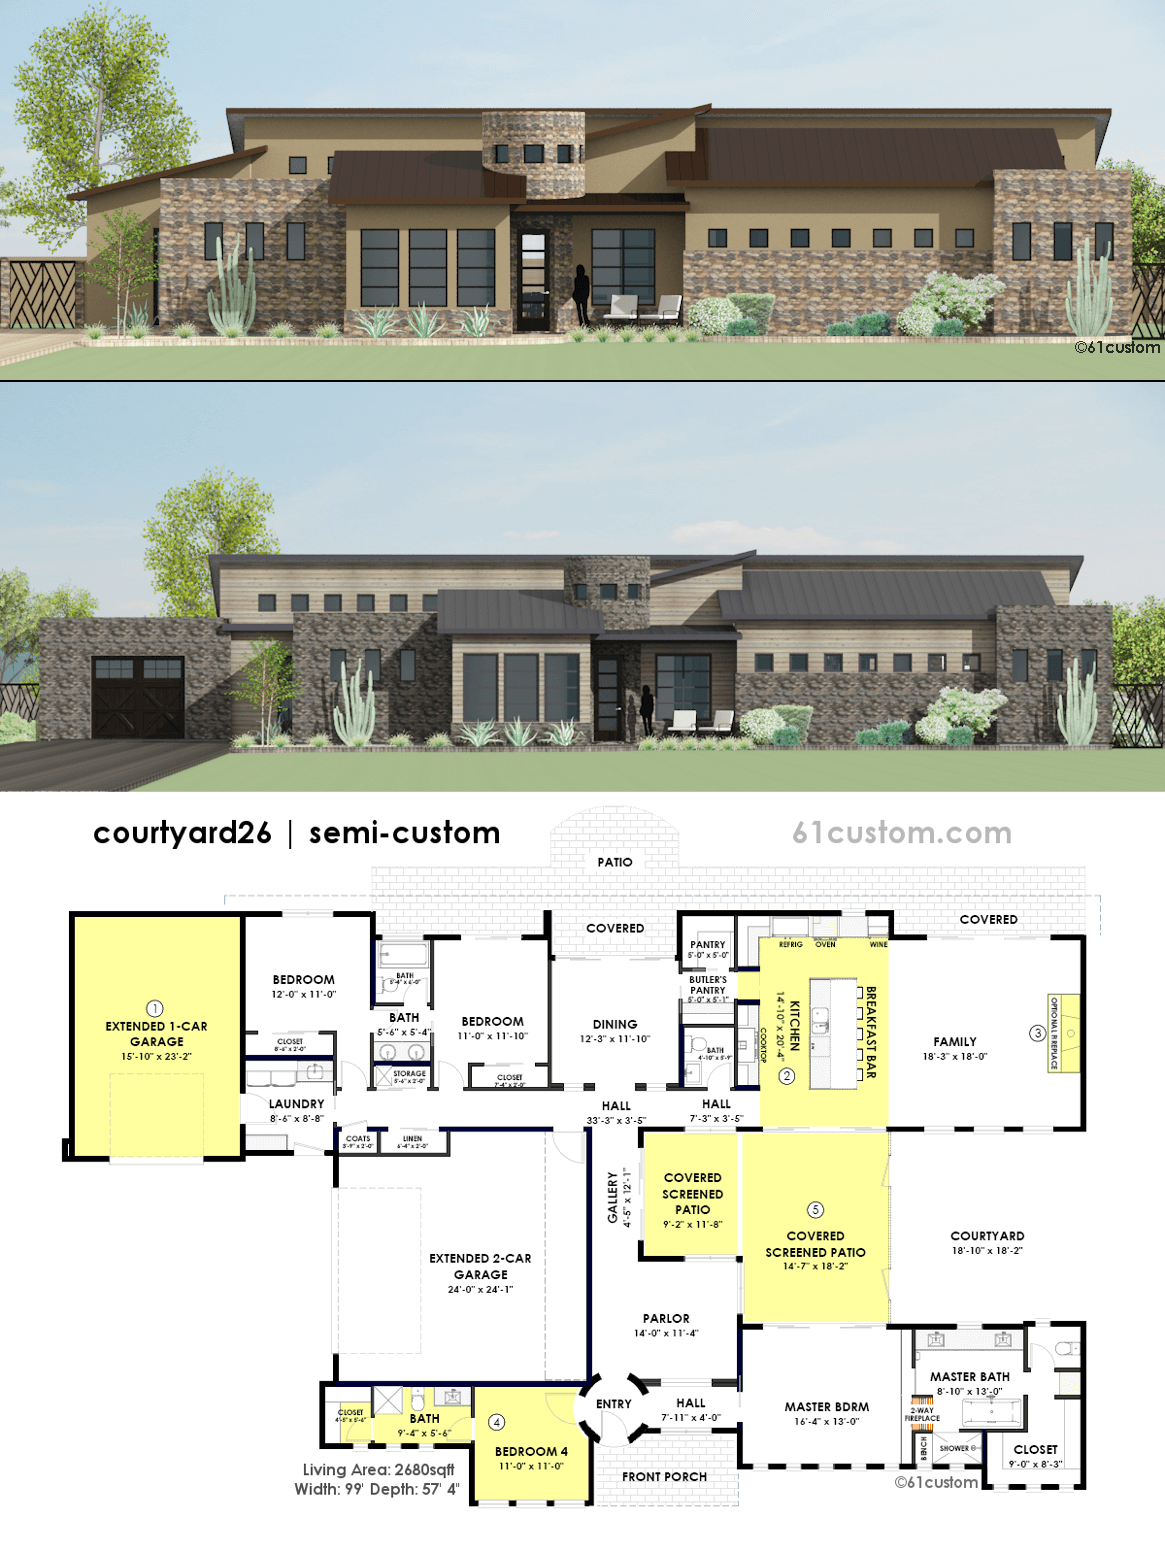 Contemporary side courtyard house plan 61custom for Custom home design online